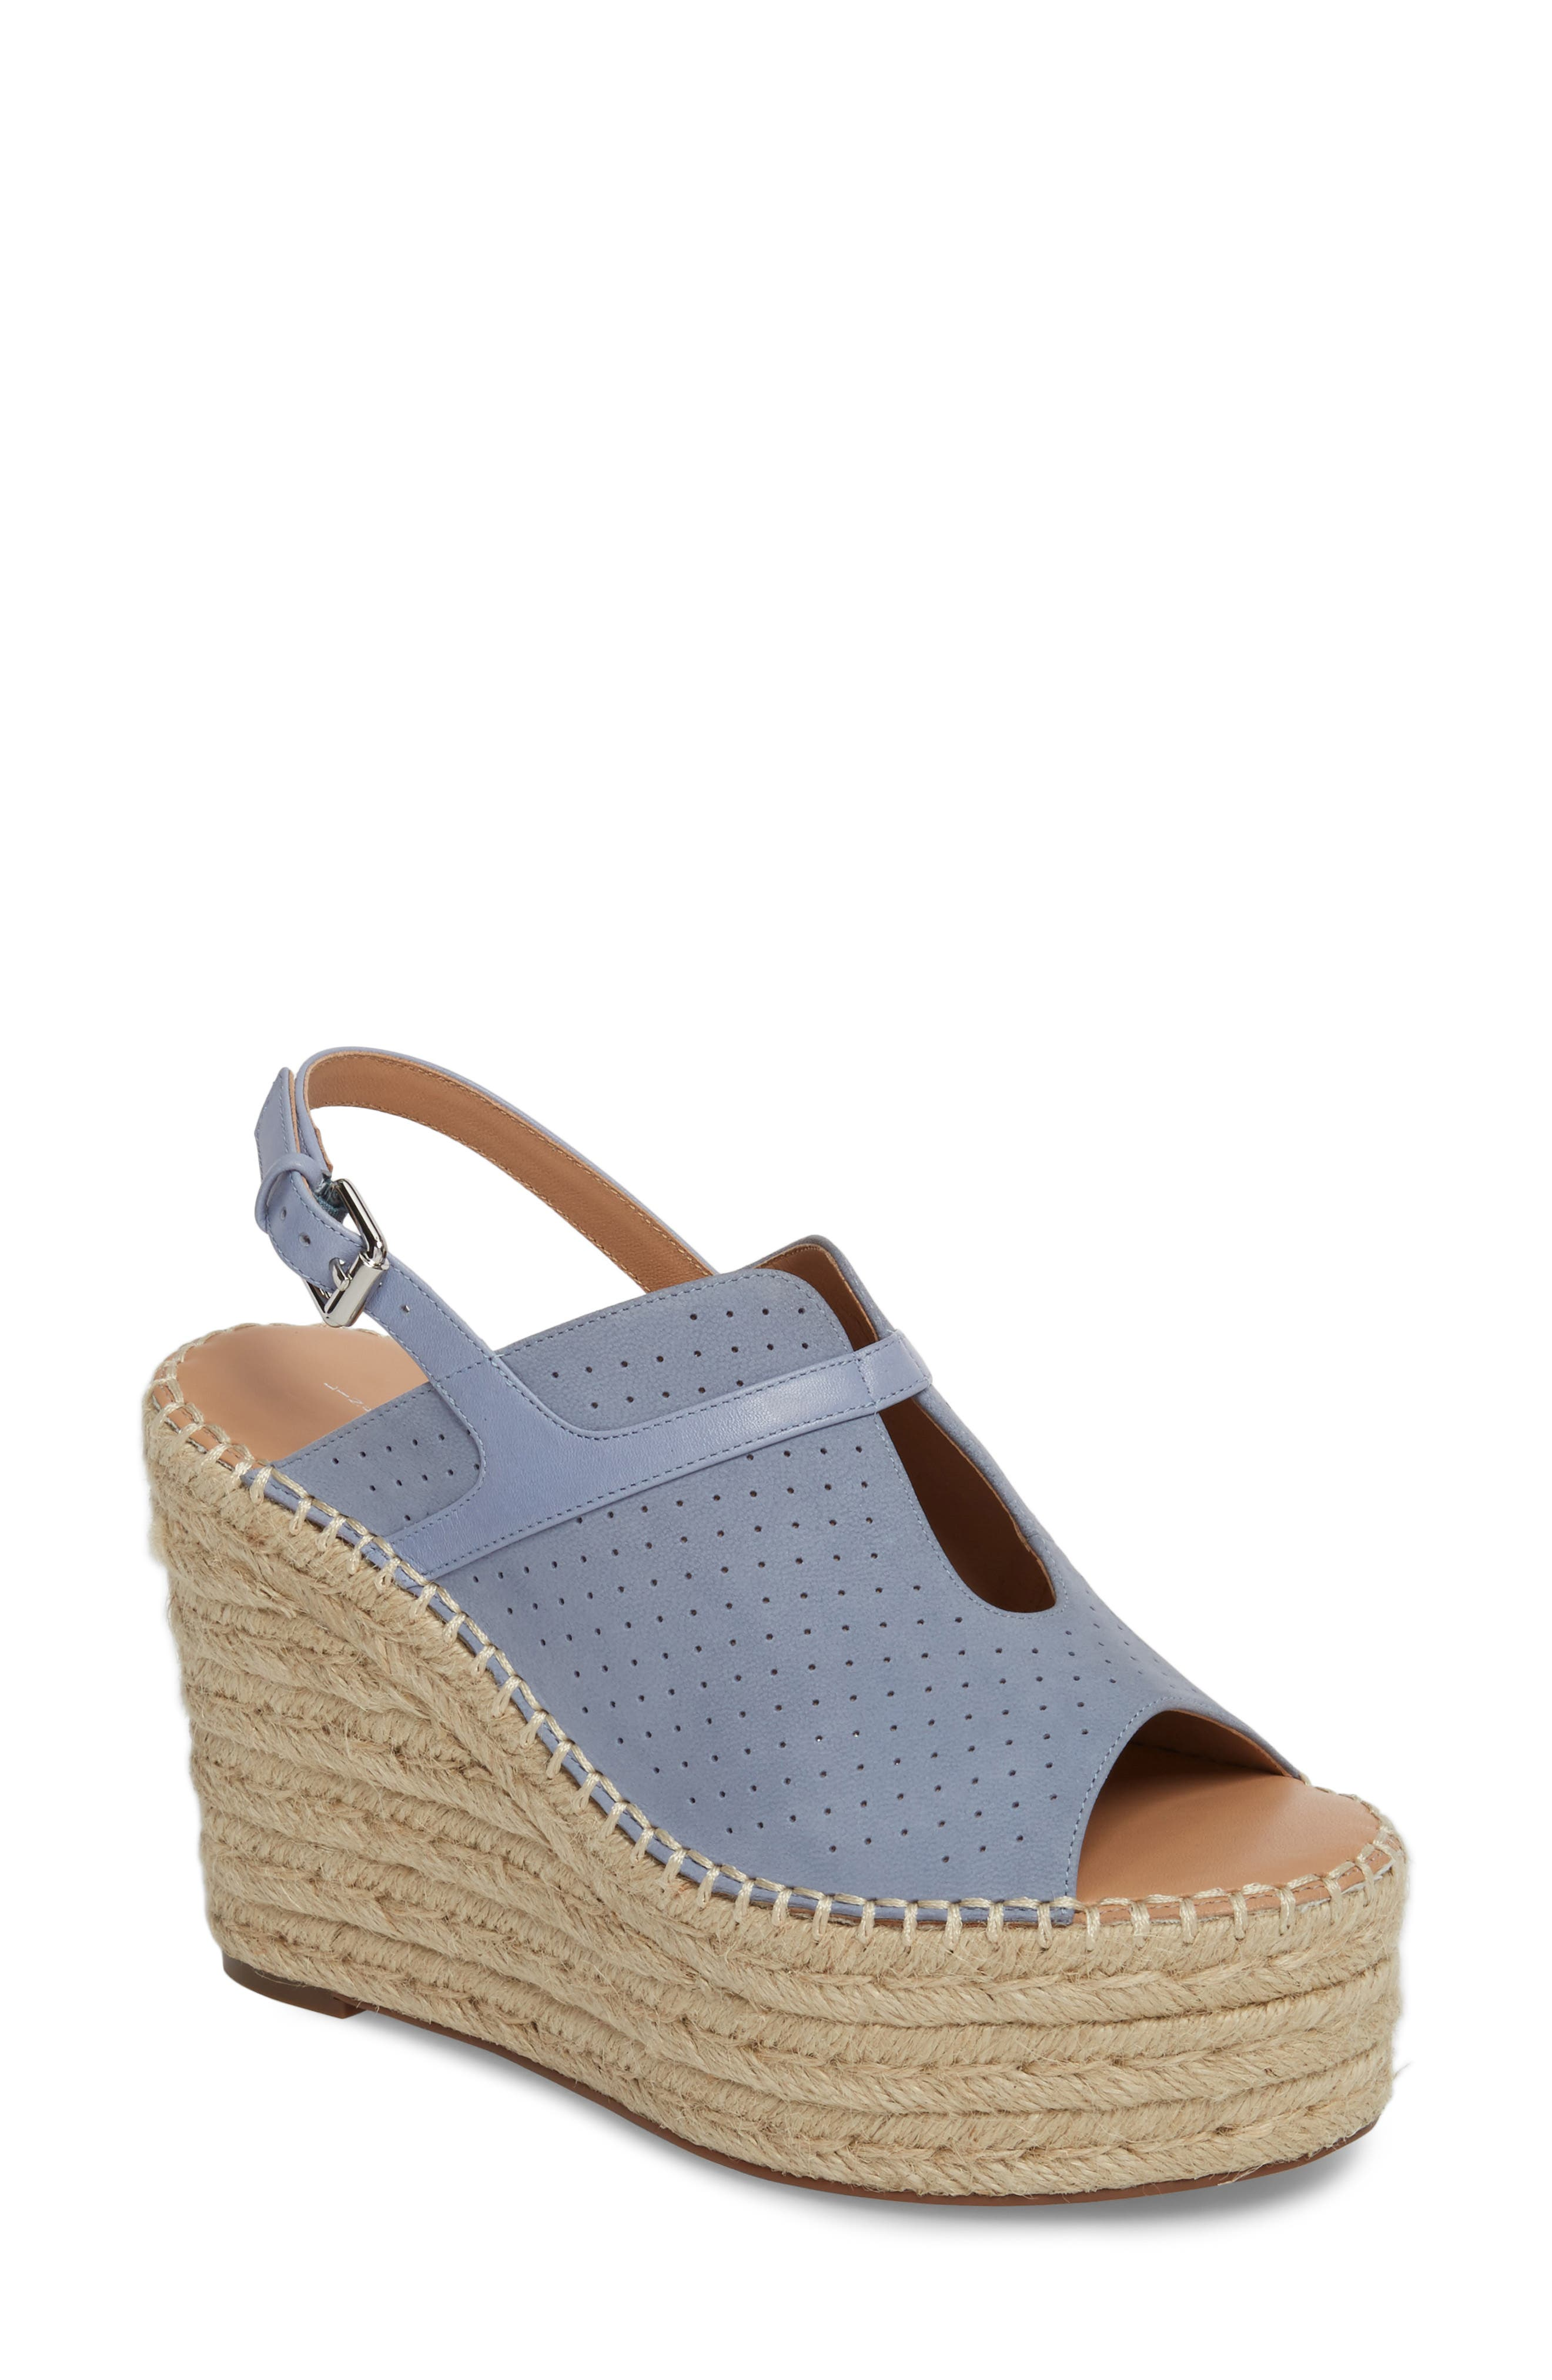 Linea Paolo Everly Espadrille Wedge Sandal (Women)